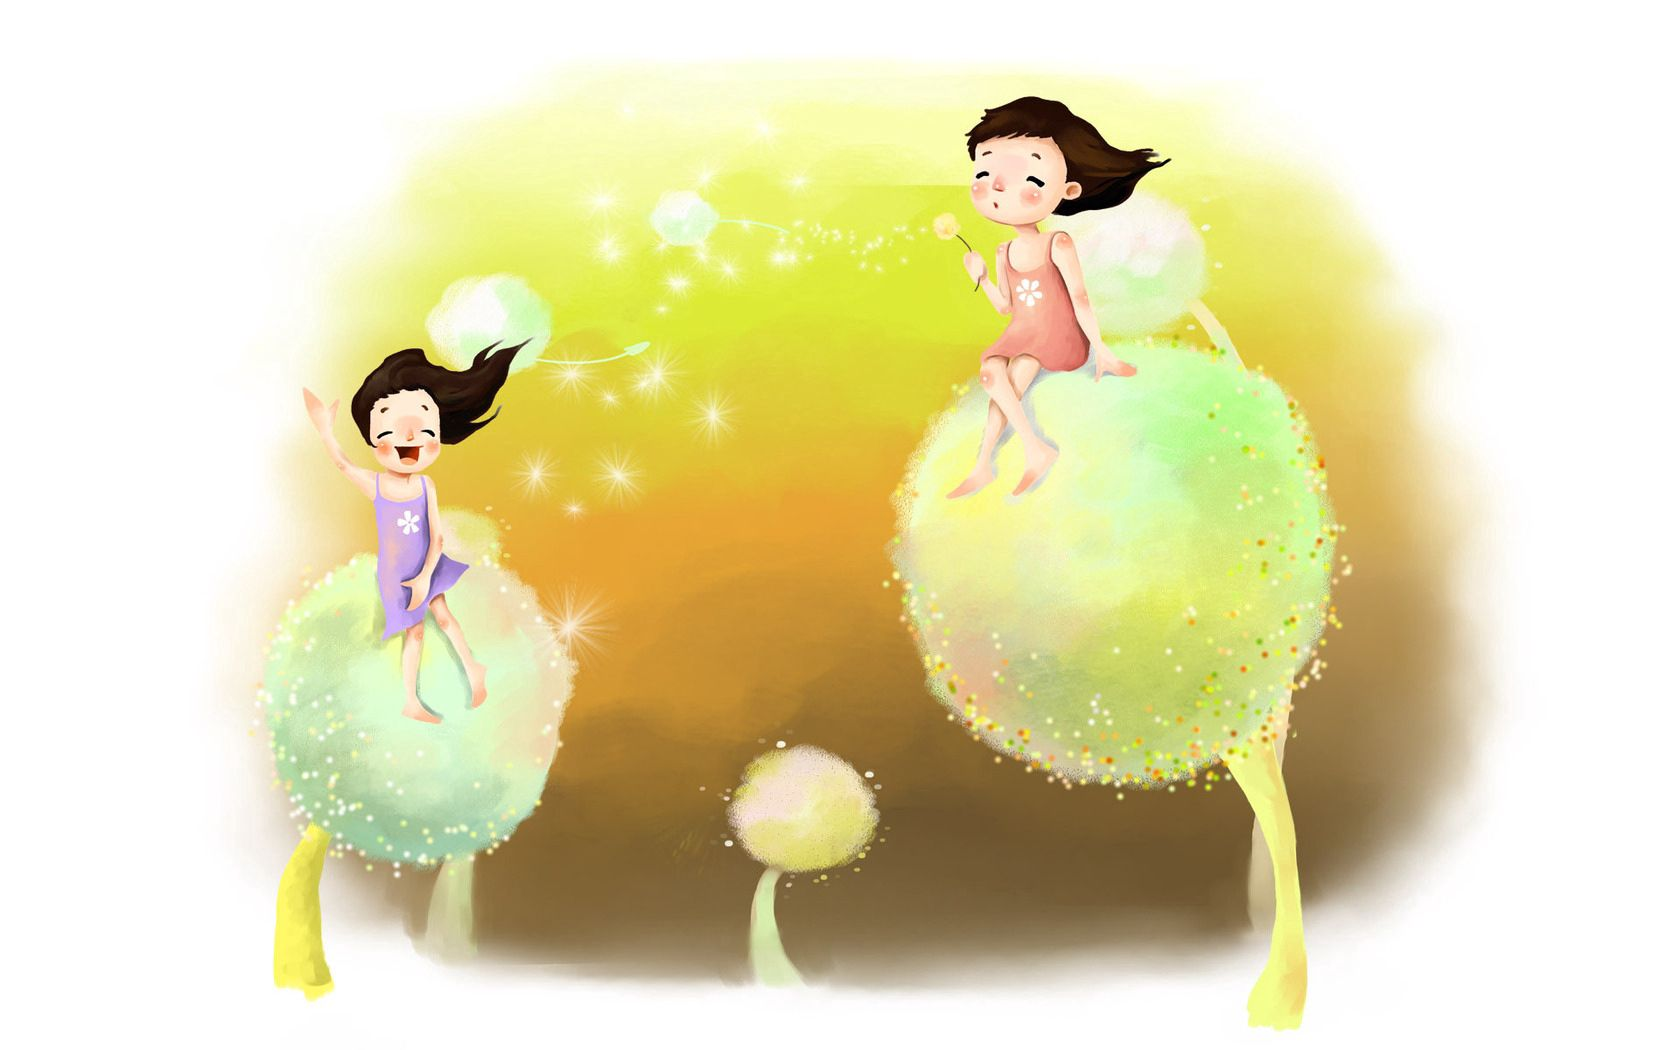 113580 download wallpaper Miscellanea, Miscellaneous, Picture, Drawing, Childhood, Girls, Dreams, Reverie, Dandelions, Fluff, Fuzz, Wind, Laugh, Laughter, Joy, Positive screensavers and pictures for free